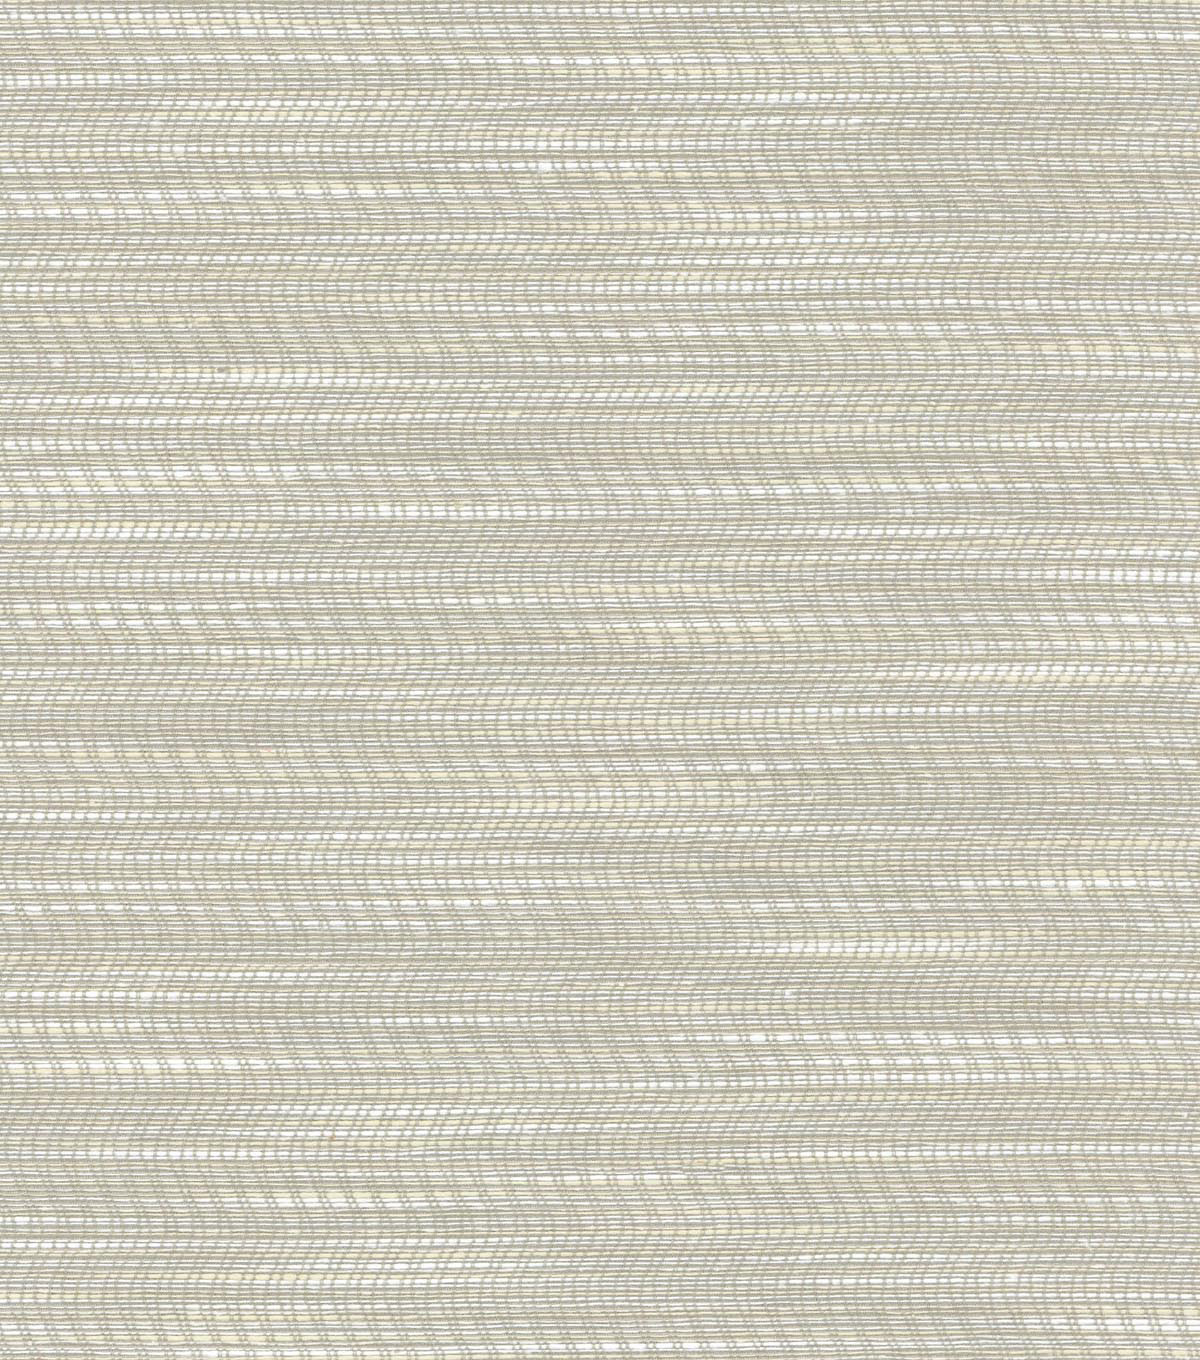 Home Decor 8\u0022x8\u0022 Swatch Fabric-PK Lifestyles Shimmy Steam